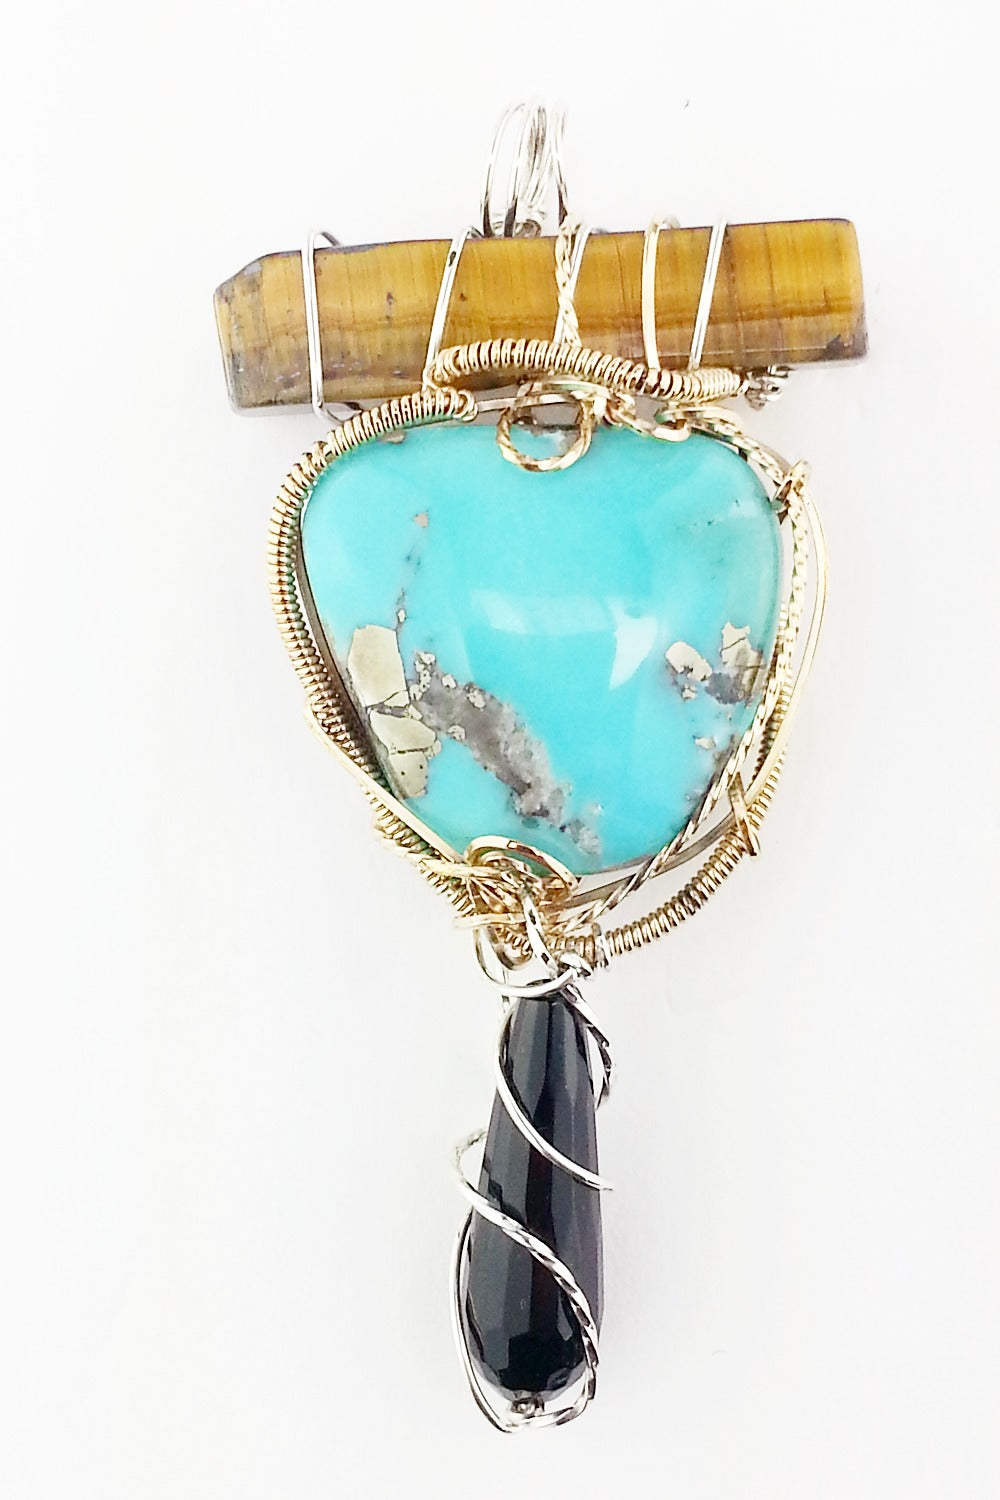 The Trio - Tiger eye, Turquoise and Black Onyx Pendant